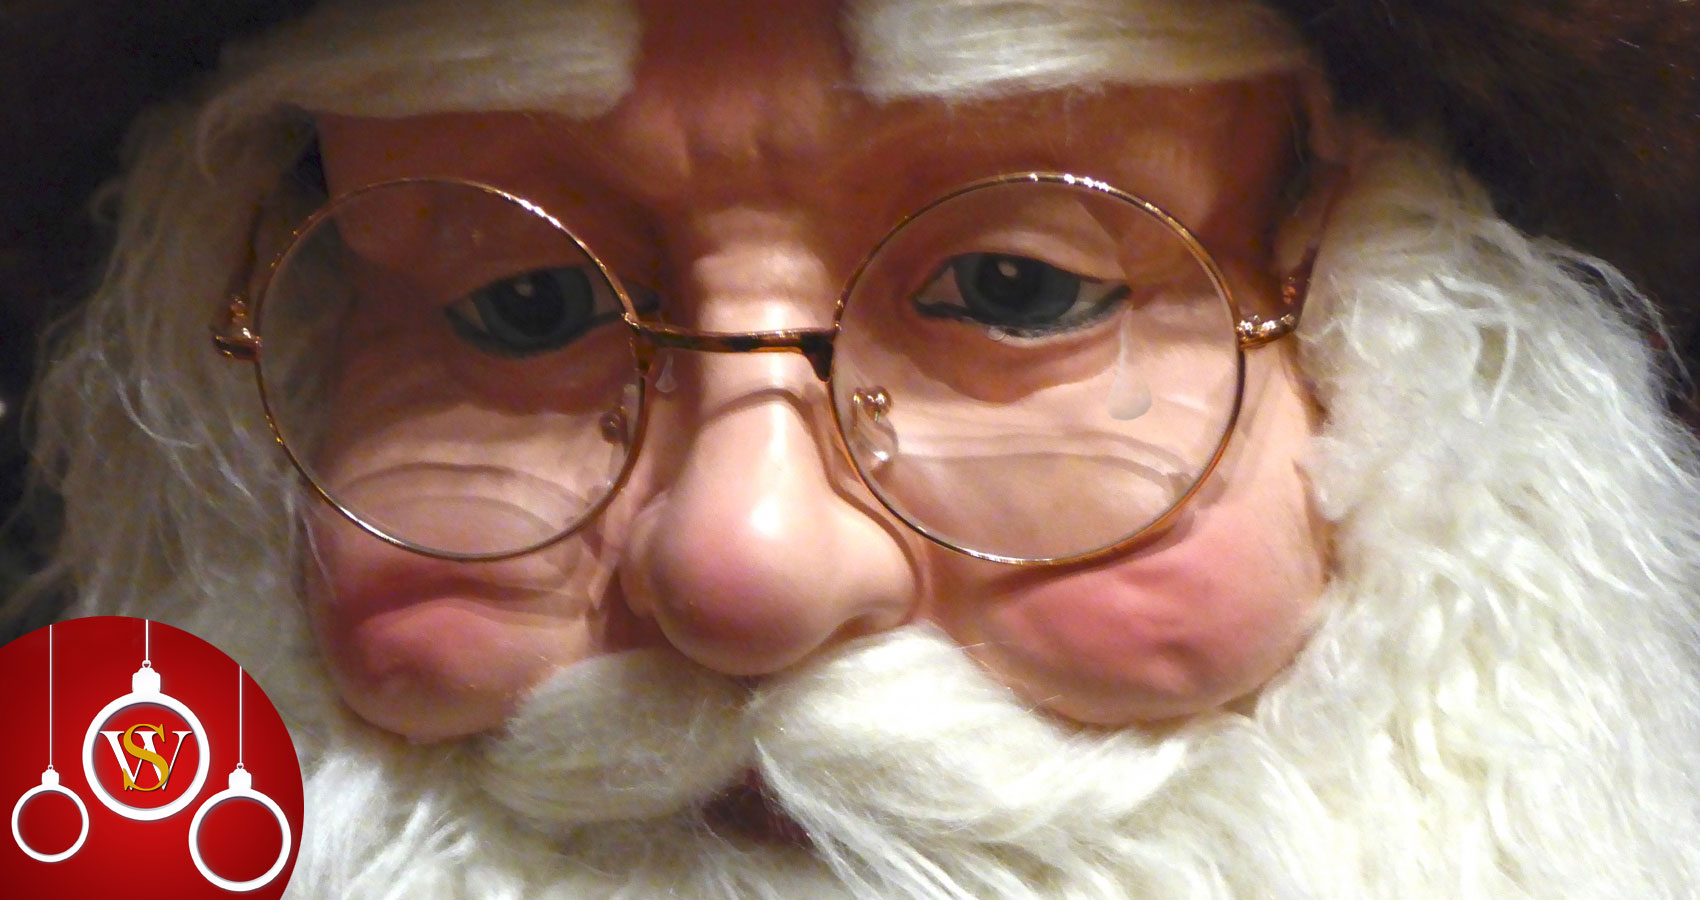 Santa Claus' Nightmare written by Dr Santosh Bakaya at Spillwords.com